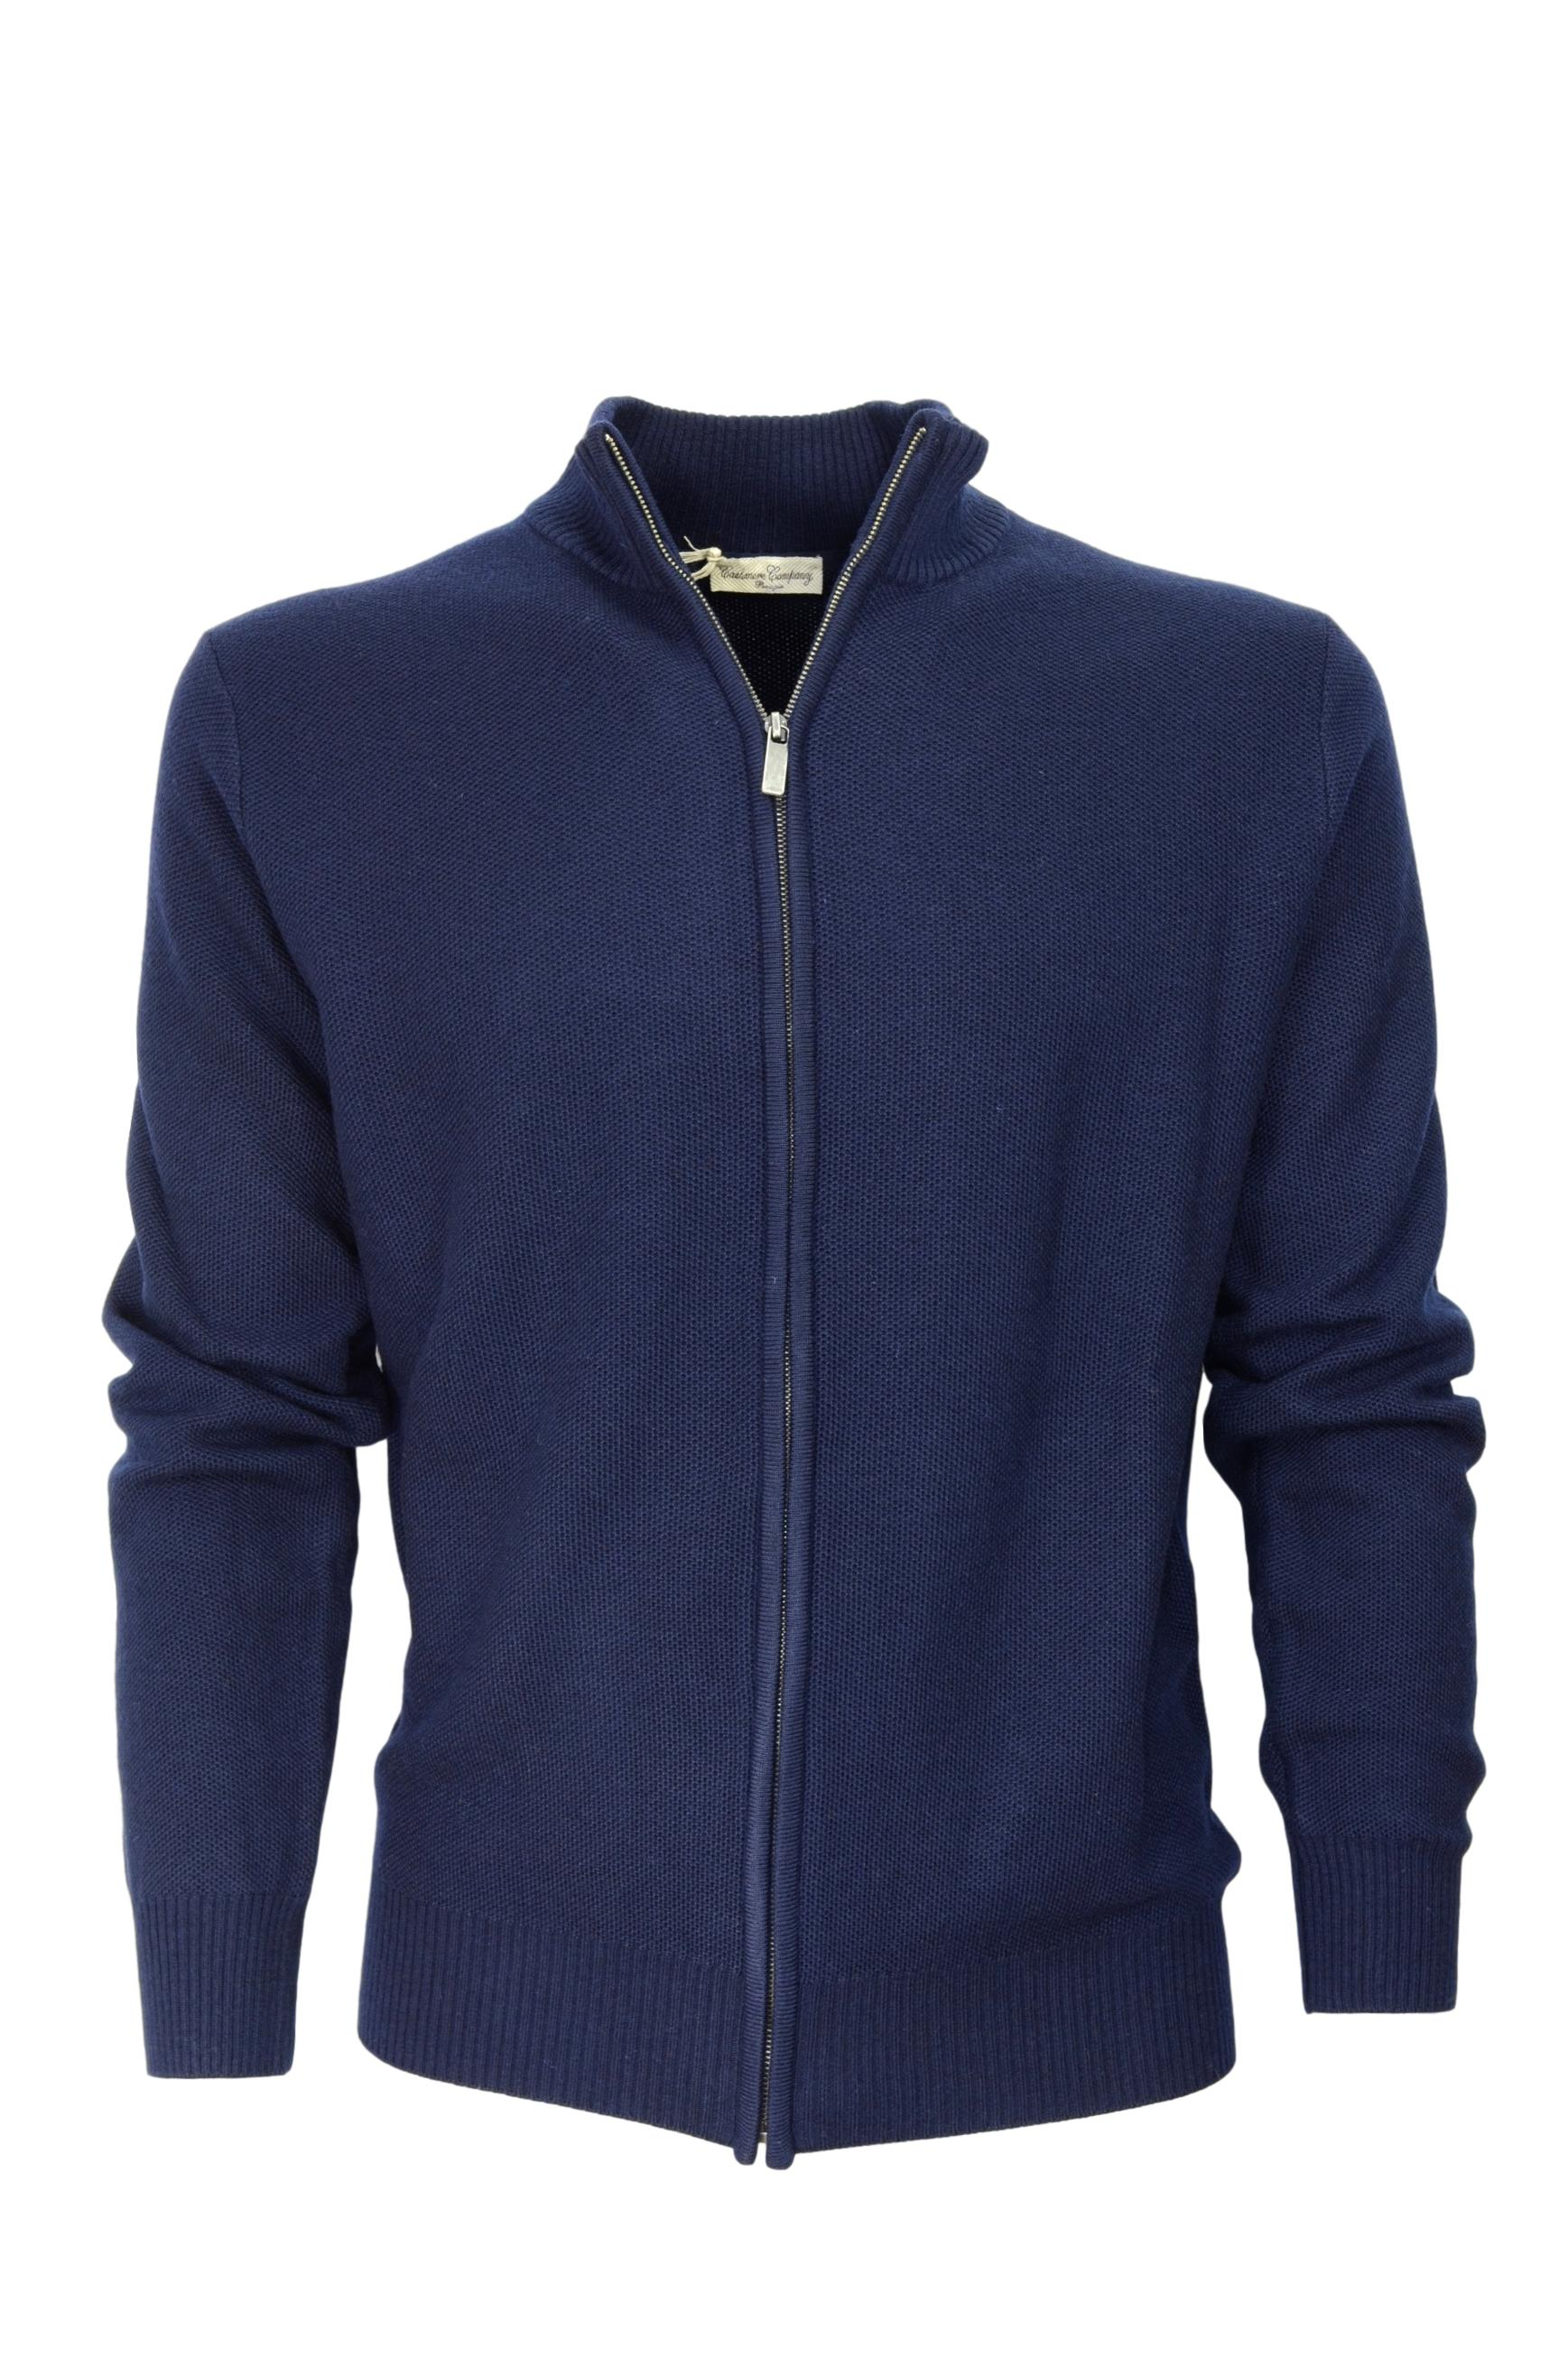 CASHMERE COMPANY CARDIGAN ZIP 410 BLU MADE IN ITALY CASHMERE E LANA